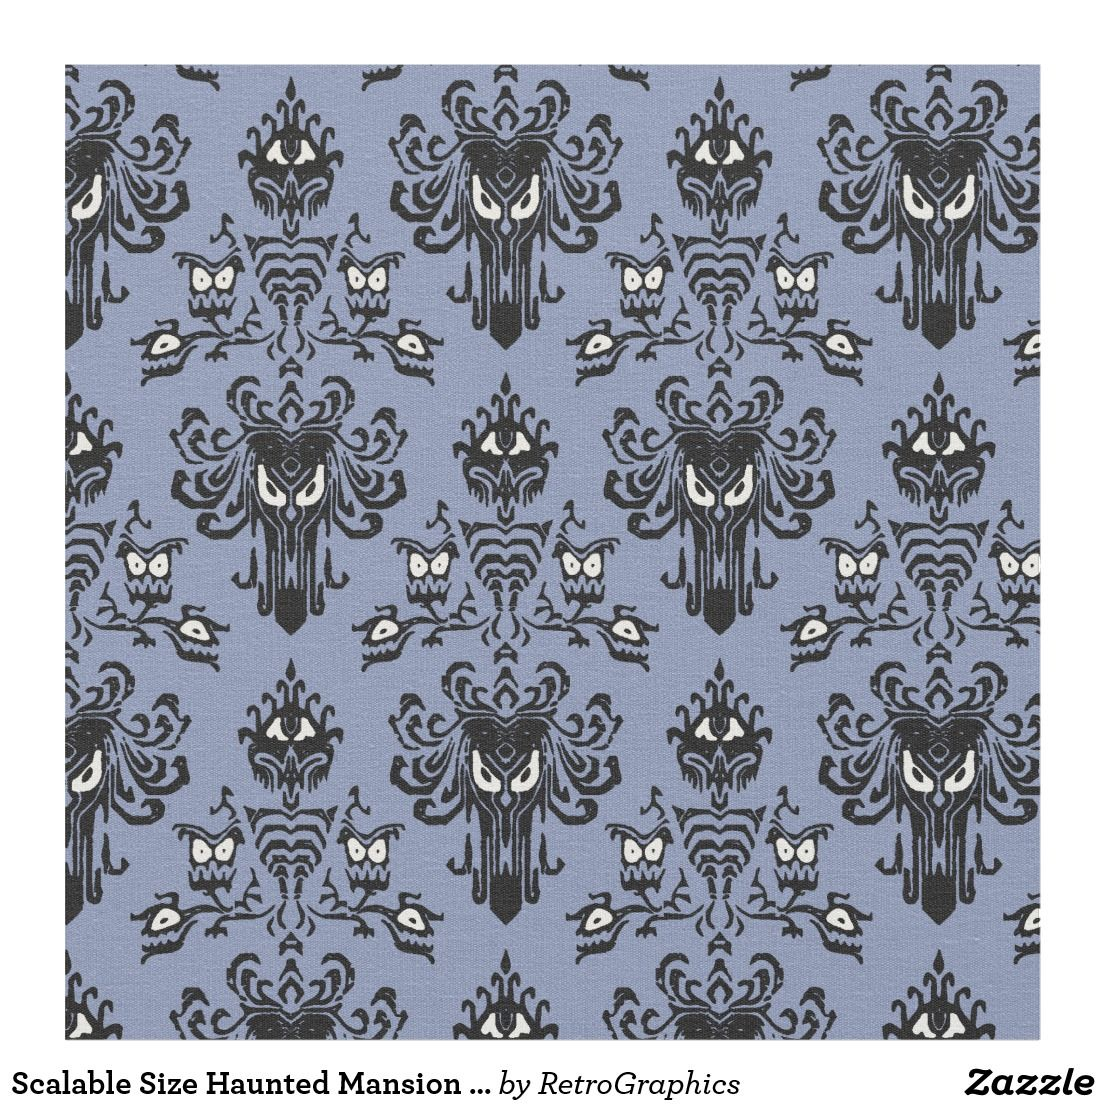 Scalable Size Haunted Mansion Fabric Haunted mansion